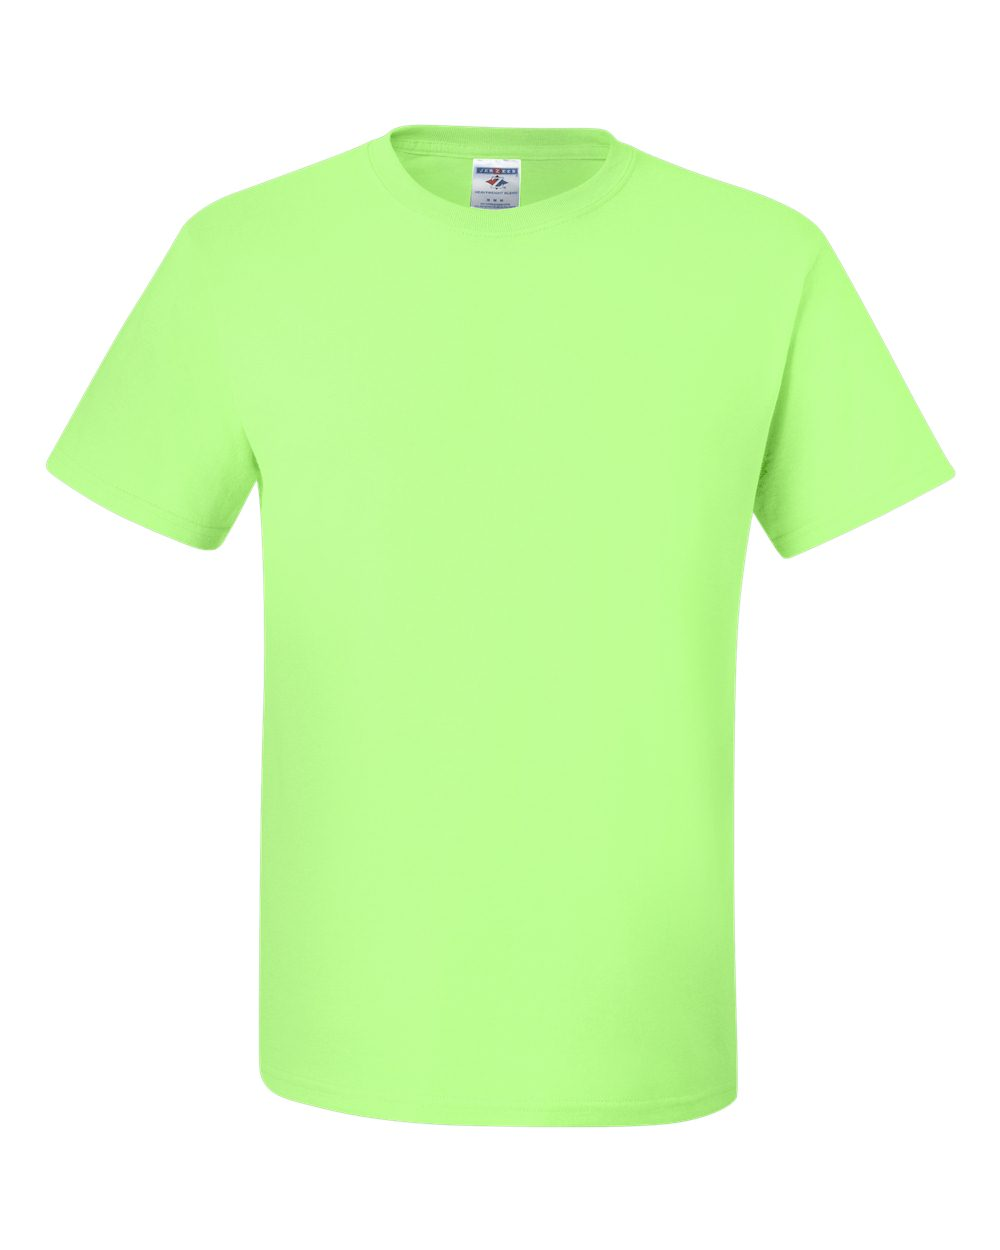 5050-neongreen.jpg